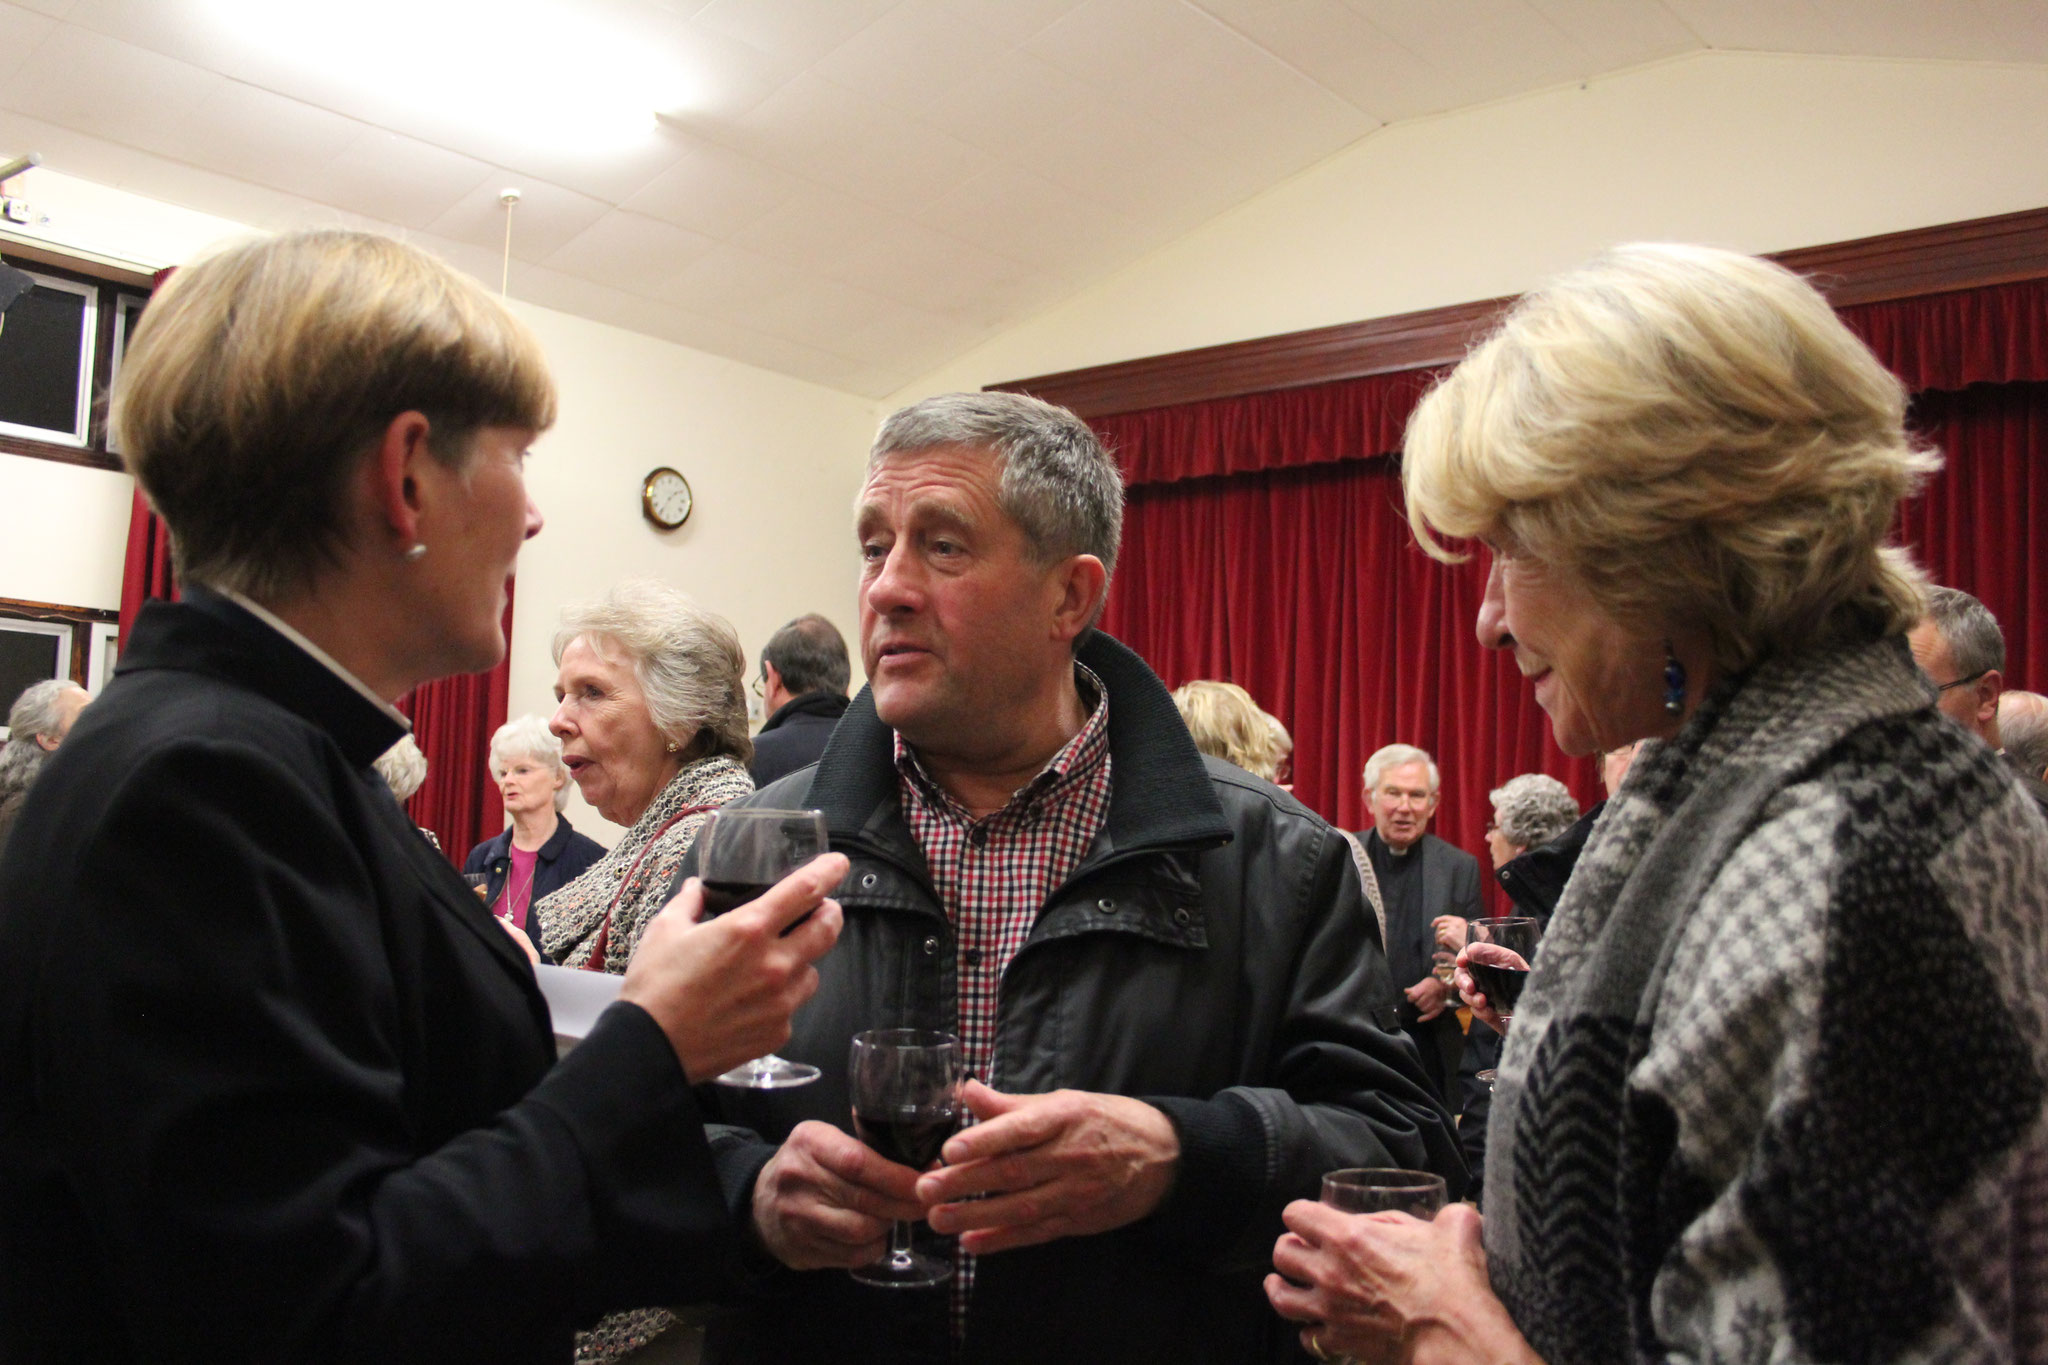 Jules and guests